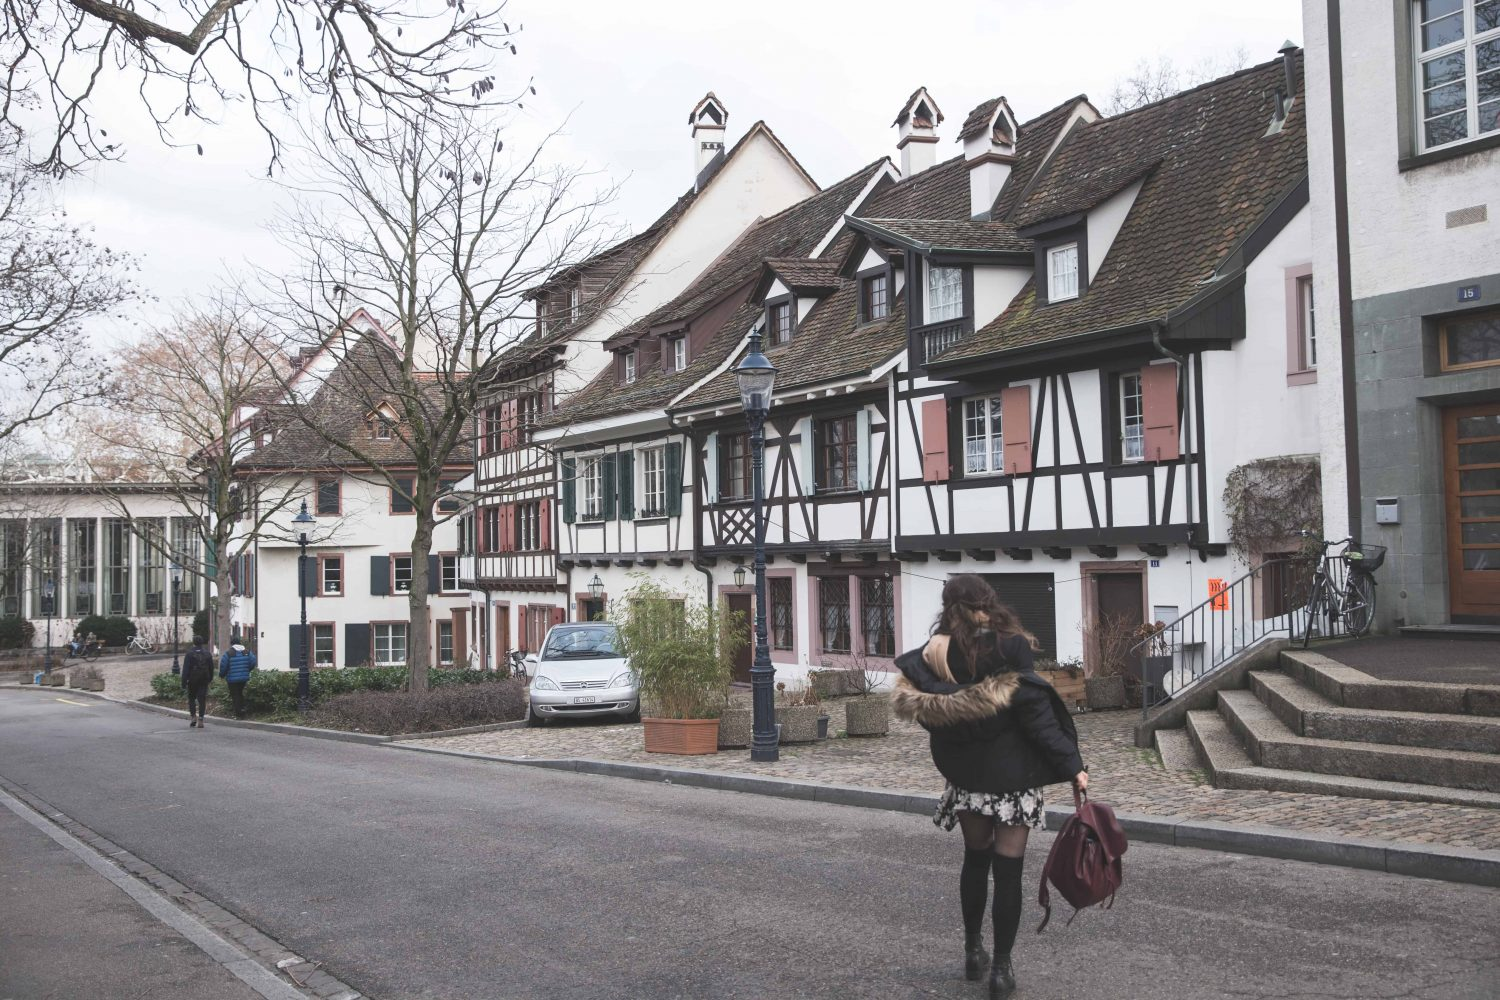 Half-timbered houses on a street in Basel, Switzerland